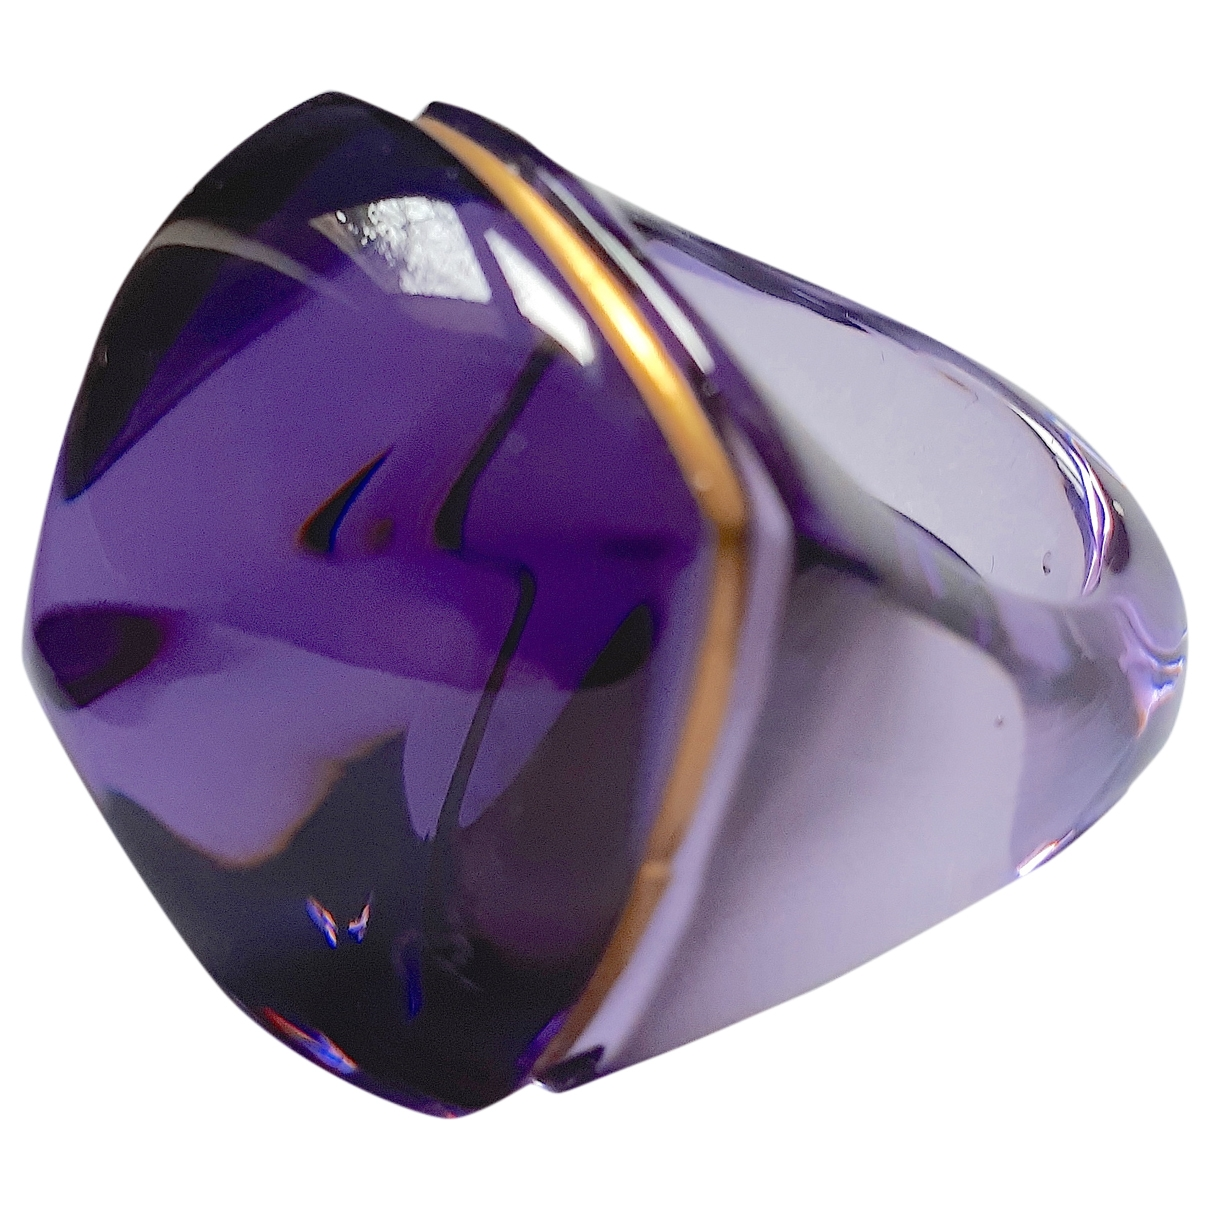 Baccarat \N Ring in  Lila Kristall